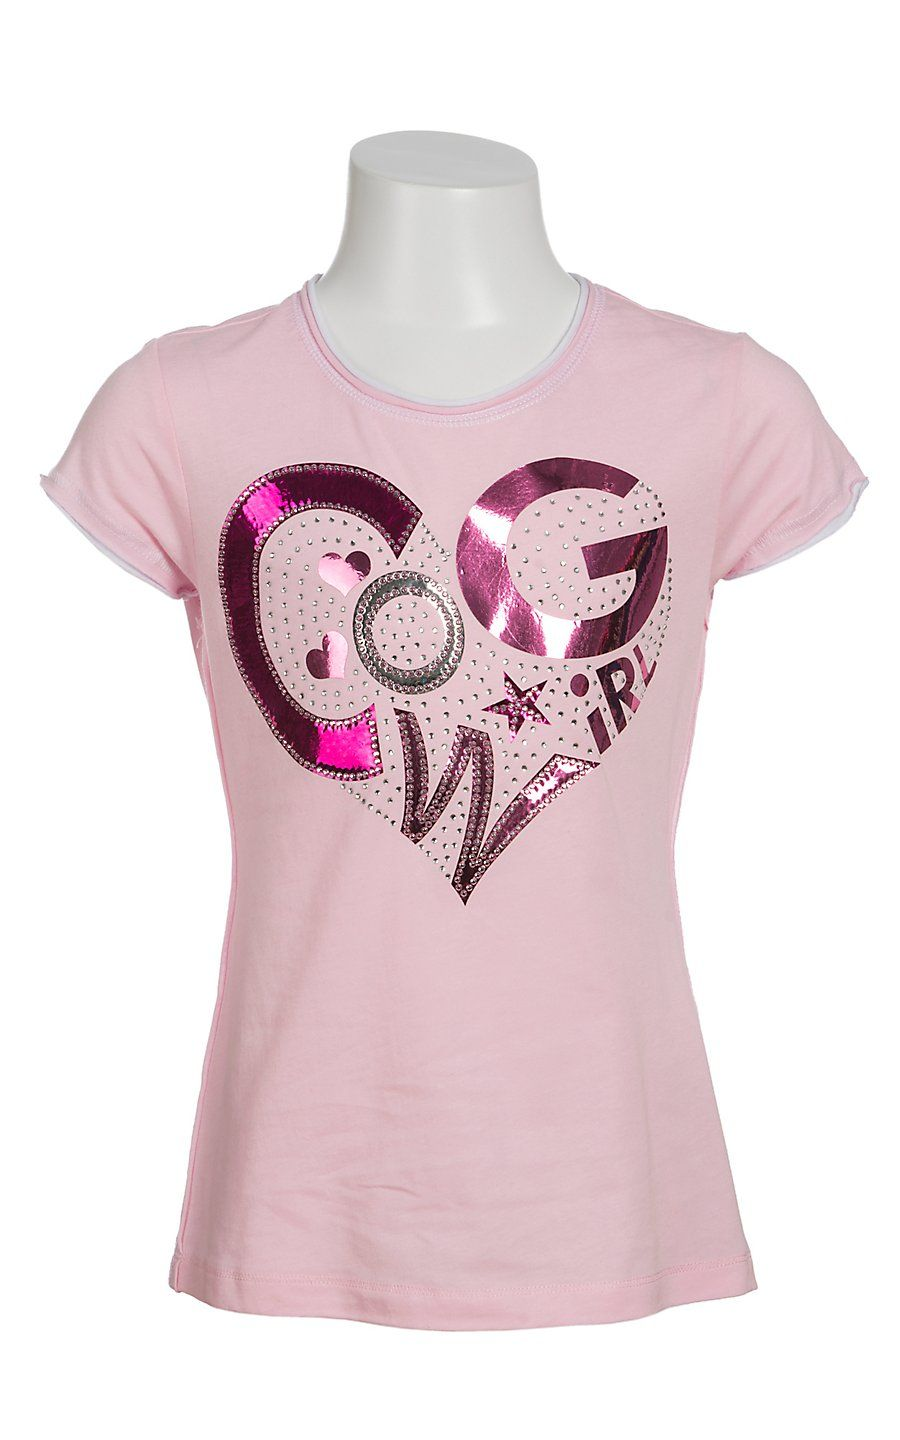 7f7073e8f3c Cowgirl Hardware Girl s Light Pink with Pink   Silver Foil Cowgirl Heart Short  Sleeve Tee